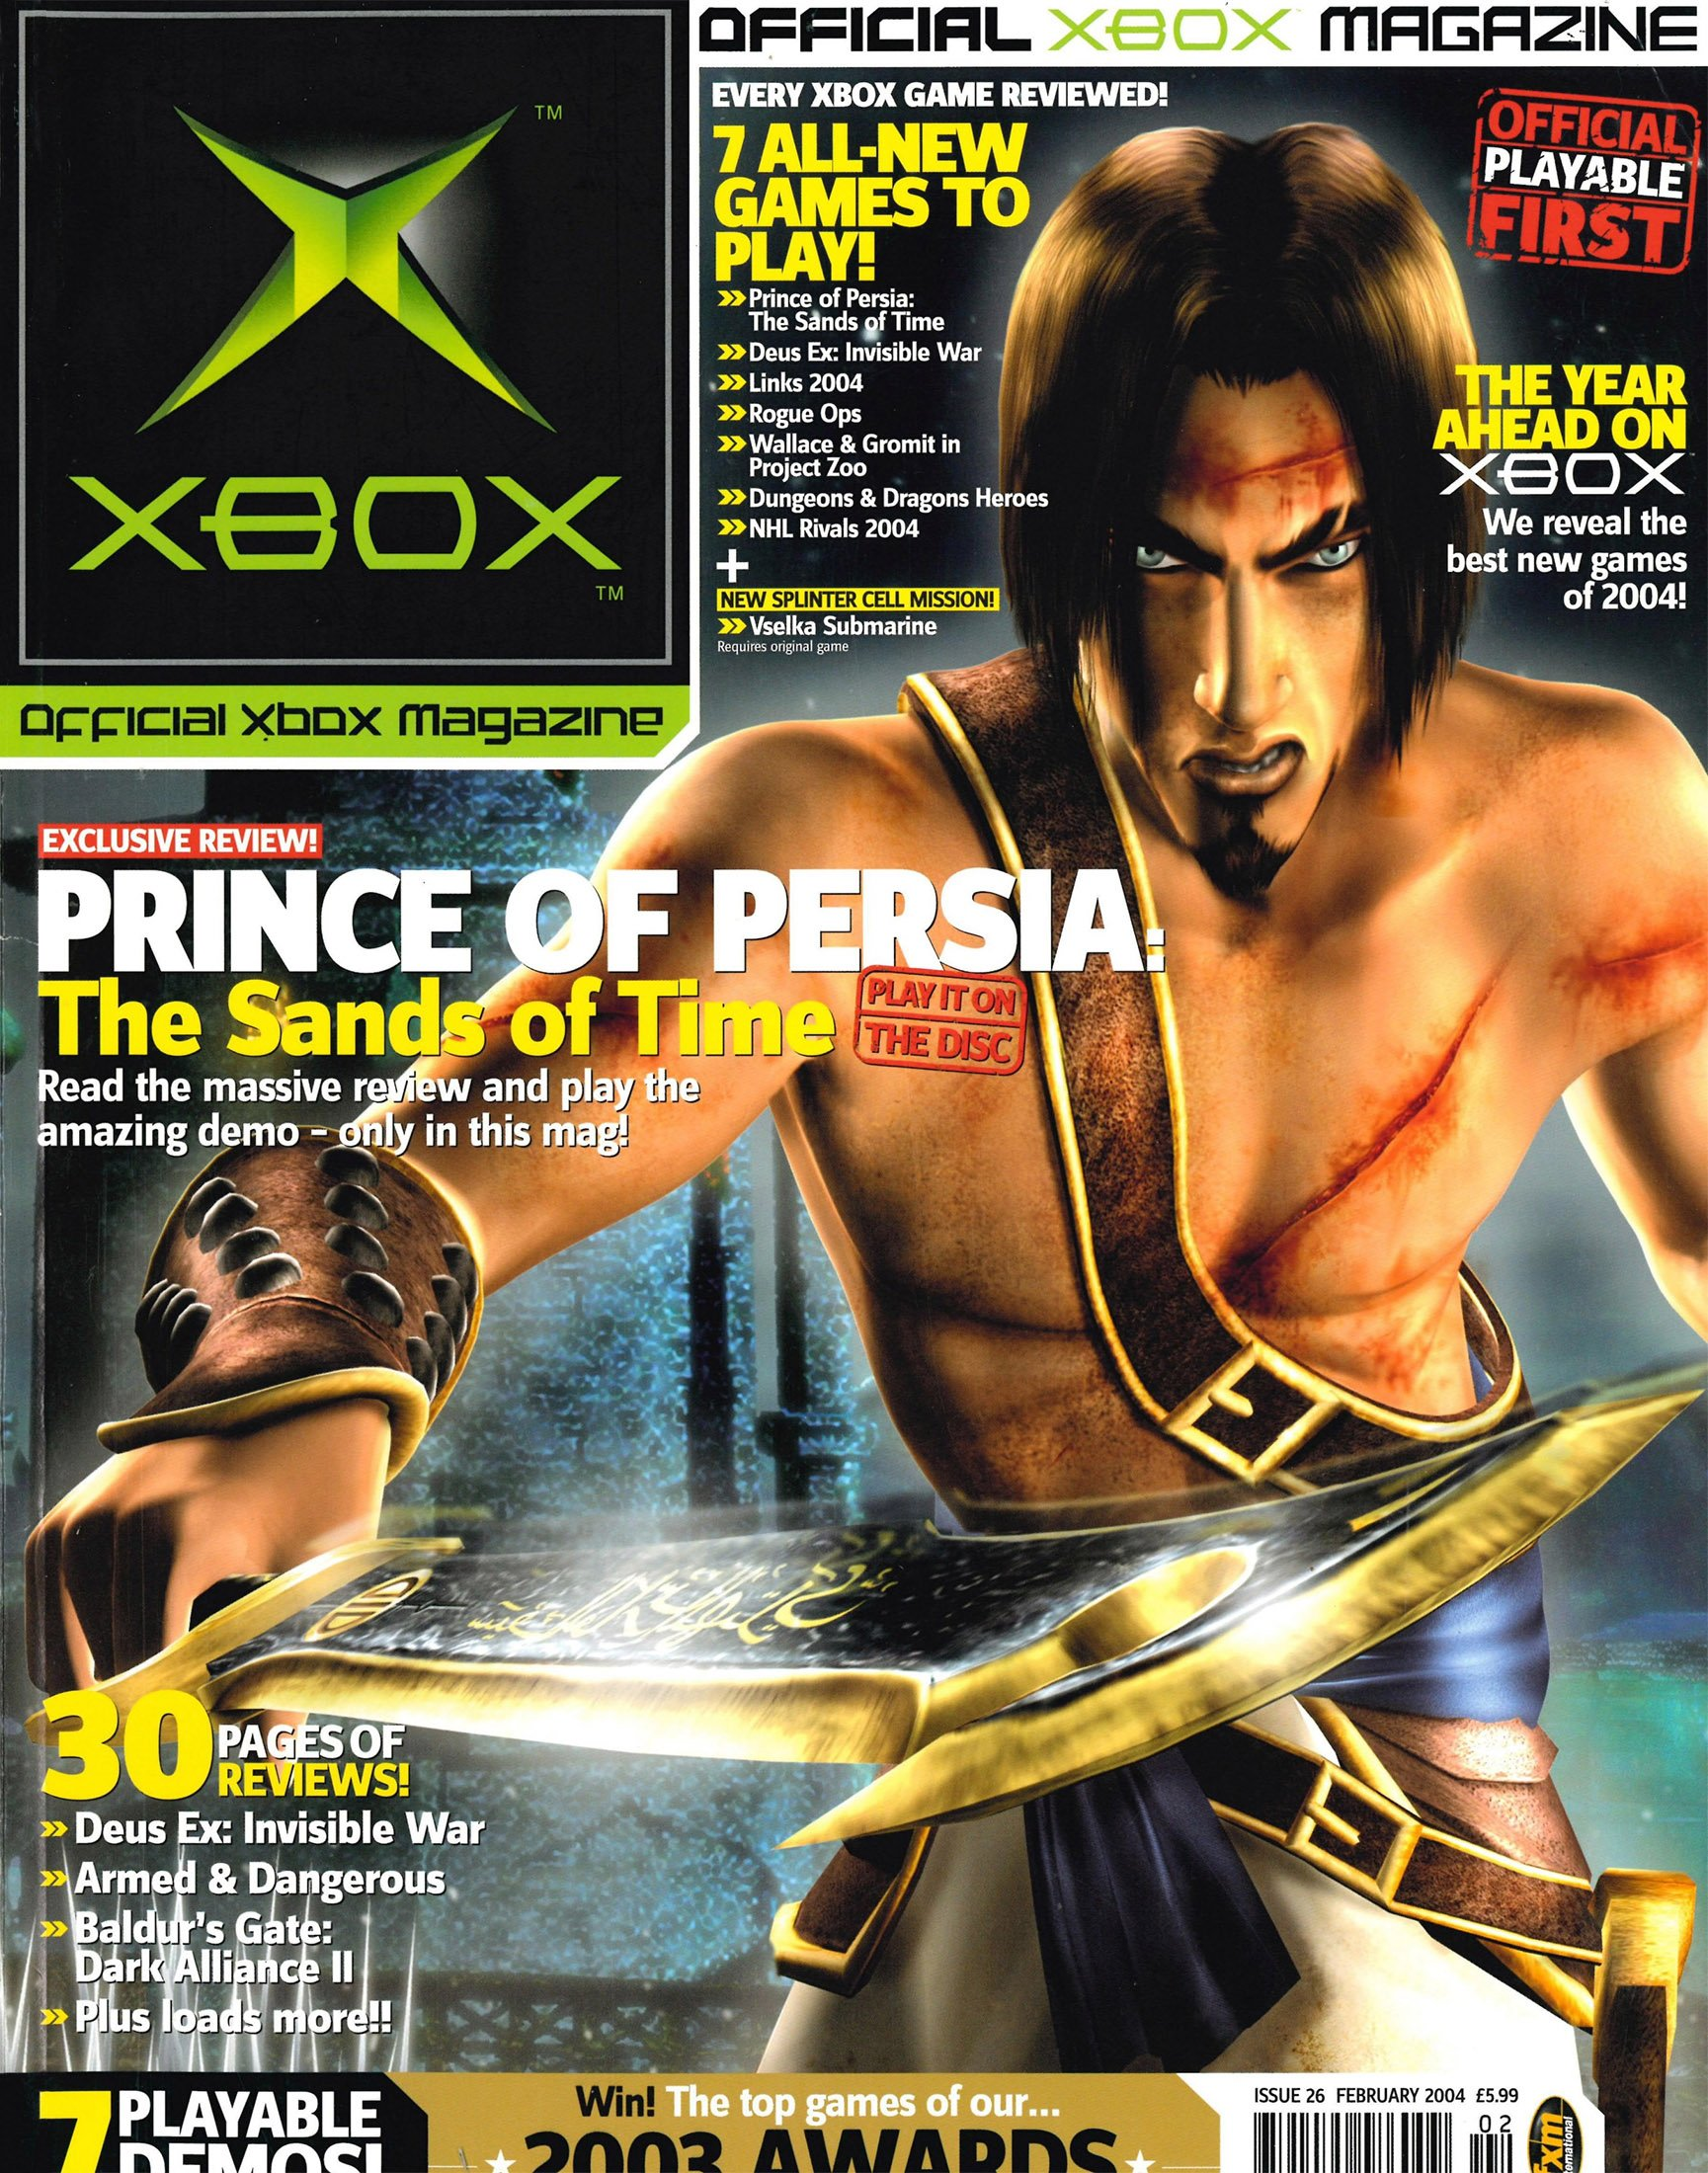 Official UK Xbox Magazine Issue 26 - February 2004